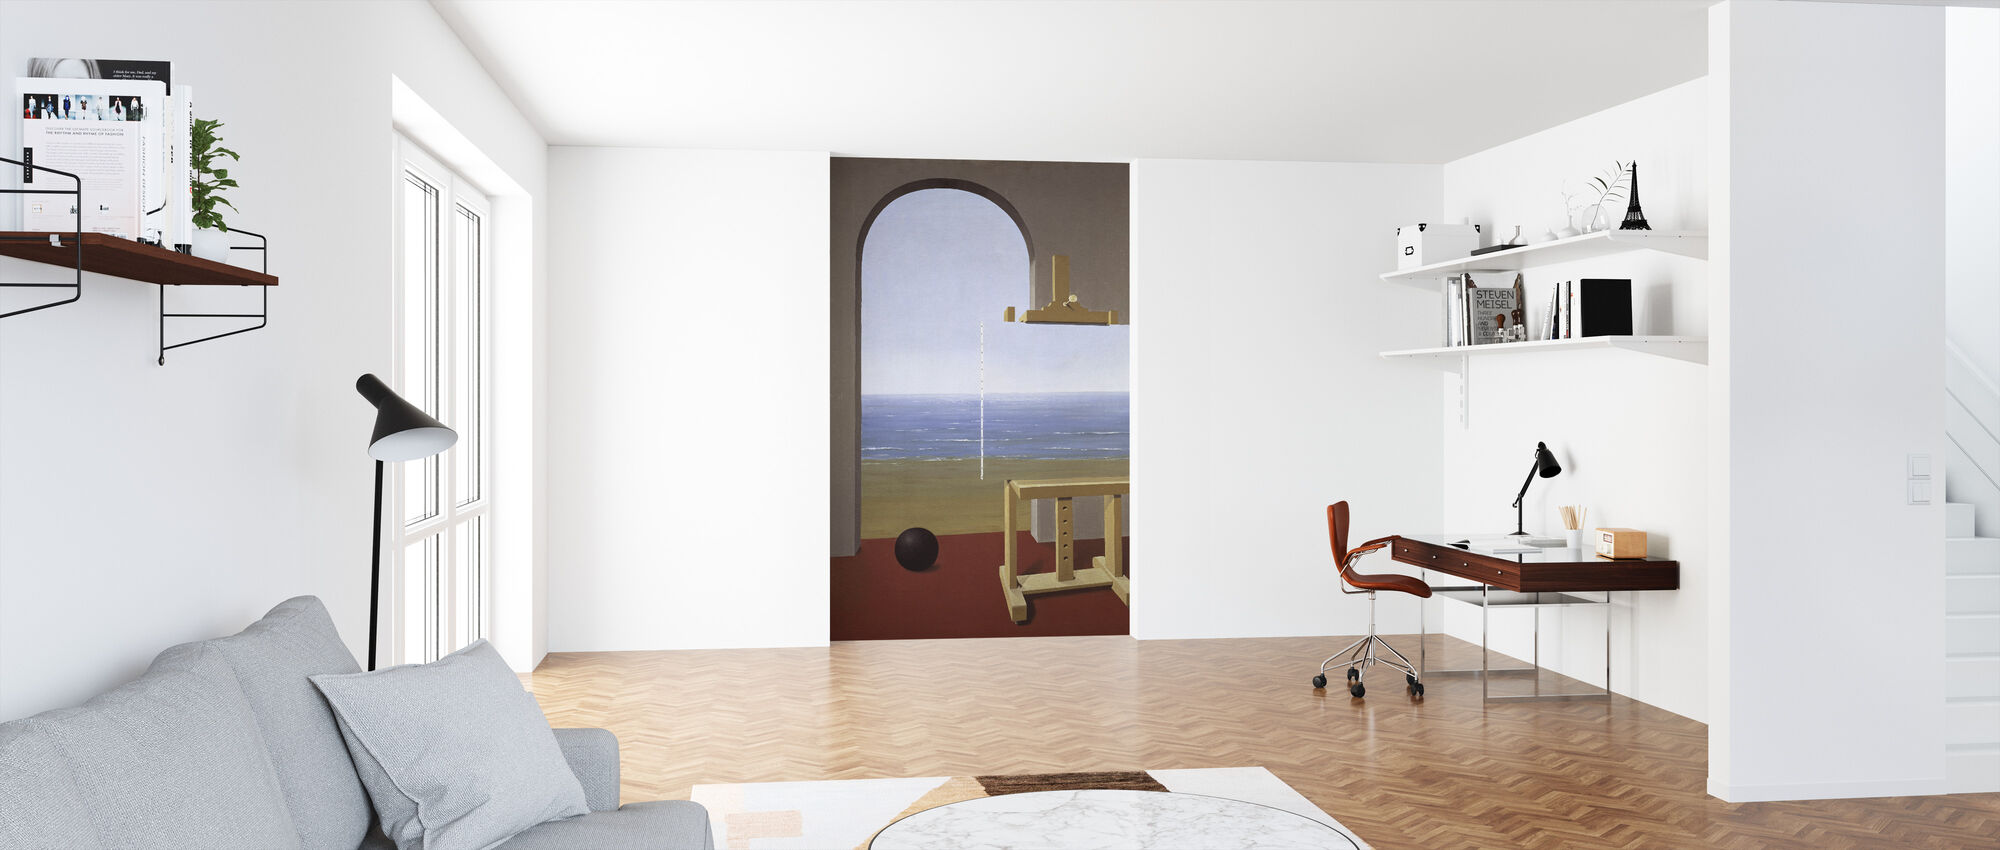 Human Condition - Rene Magritte - Wallpaper - Office